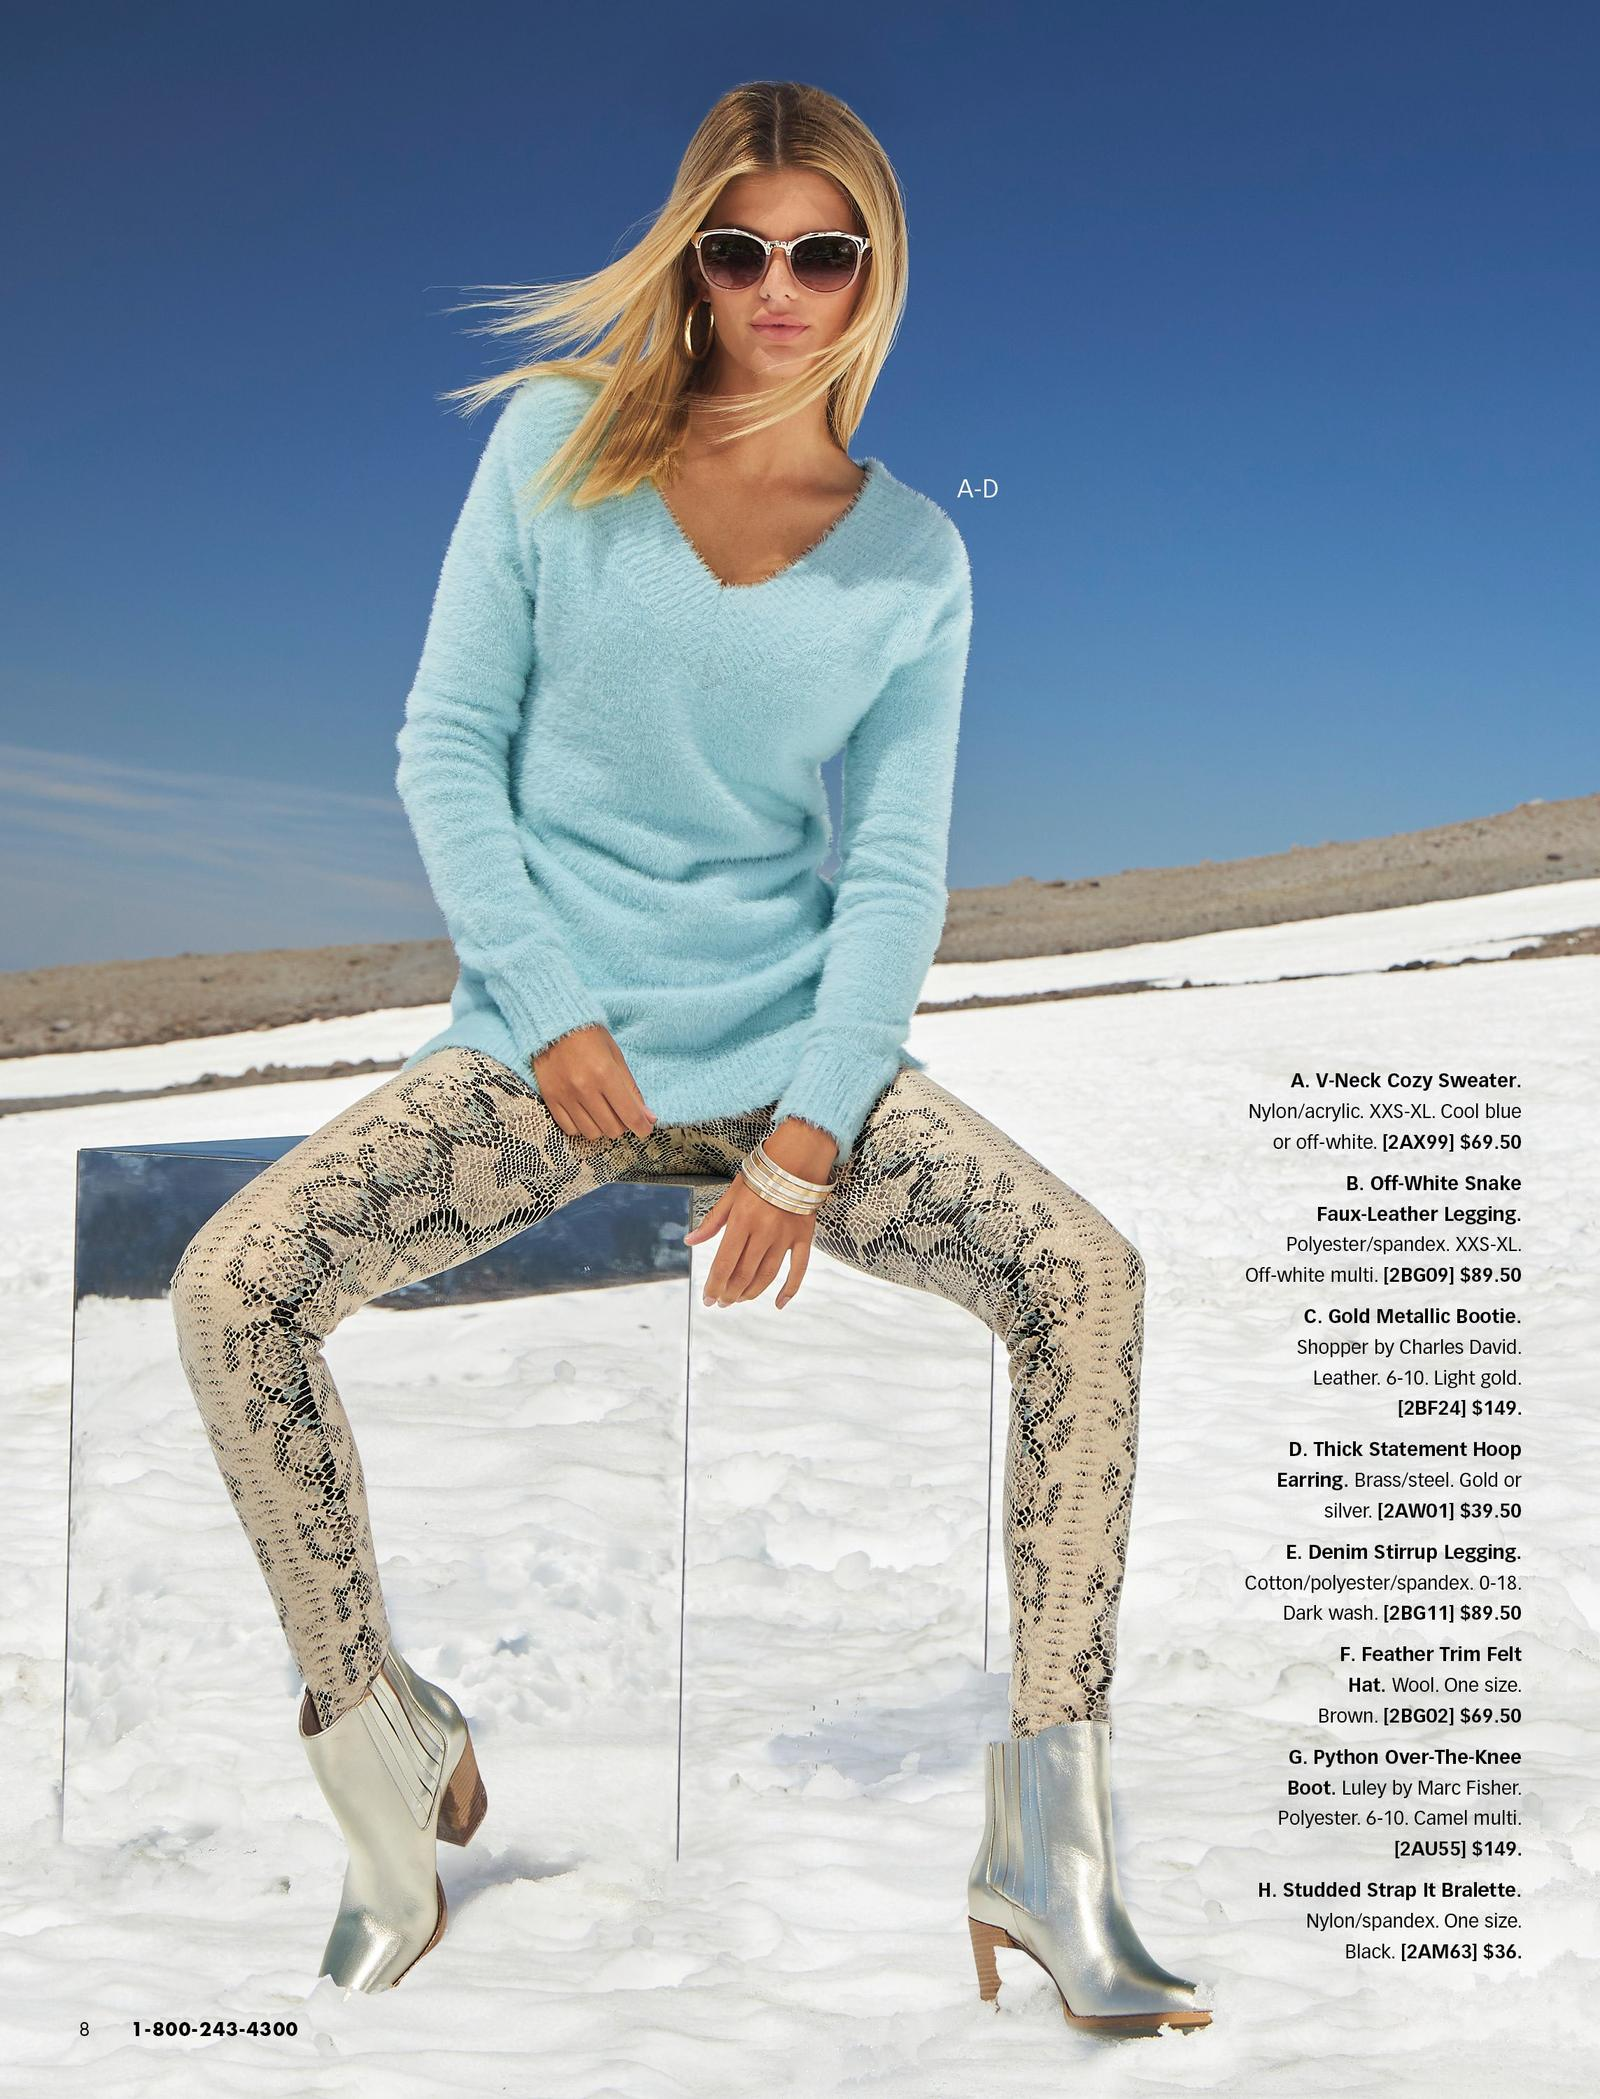 model wearing a light blue plush v-neck sweater, off-white snake print faux-leather leggings, and silver booties.